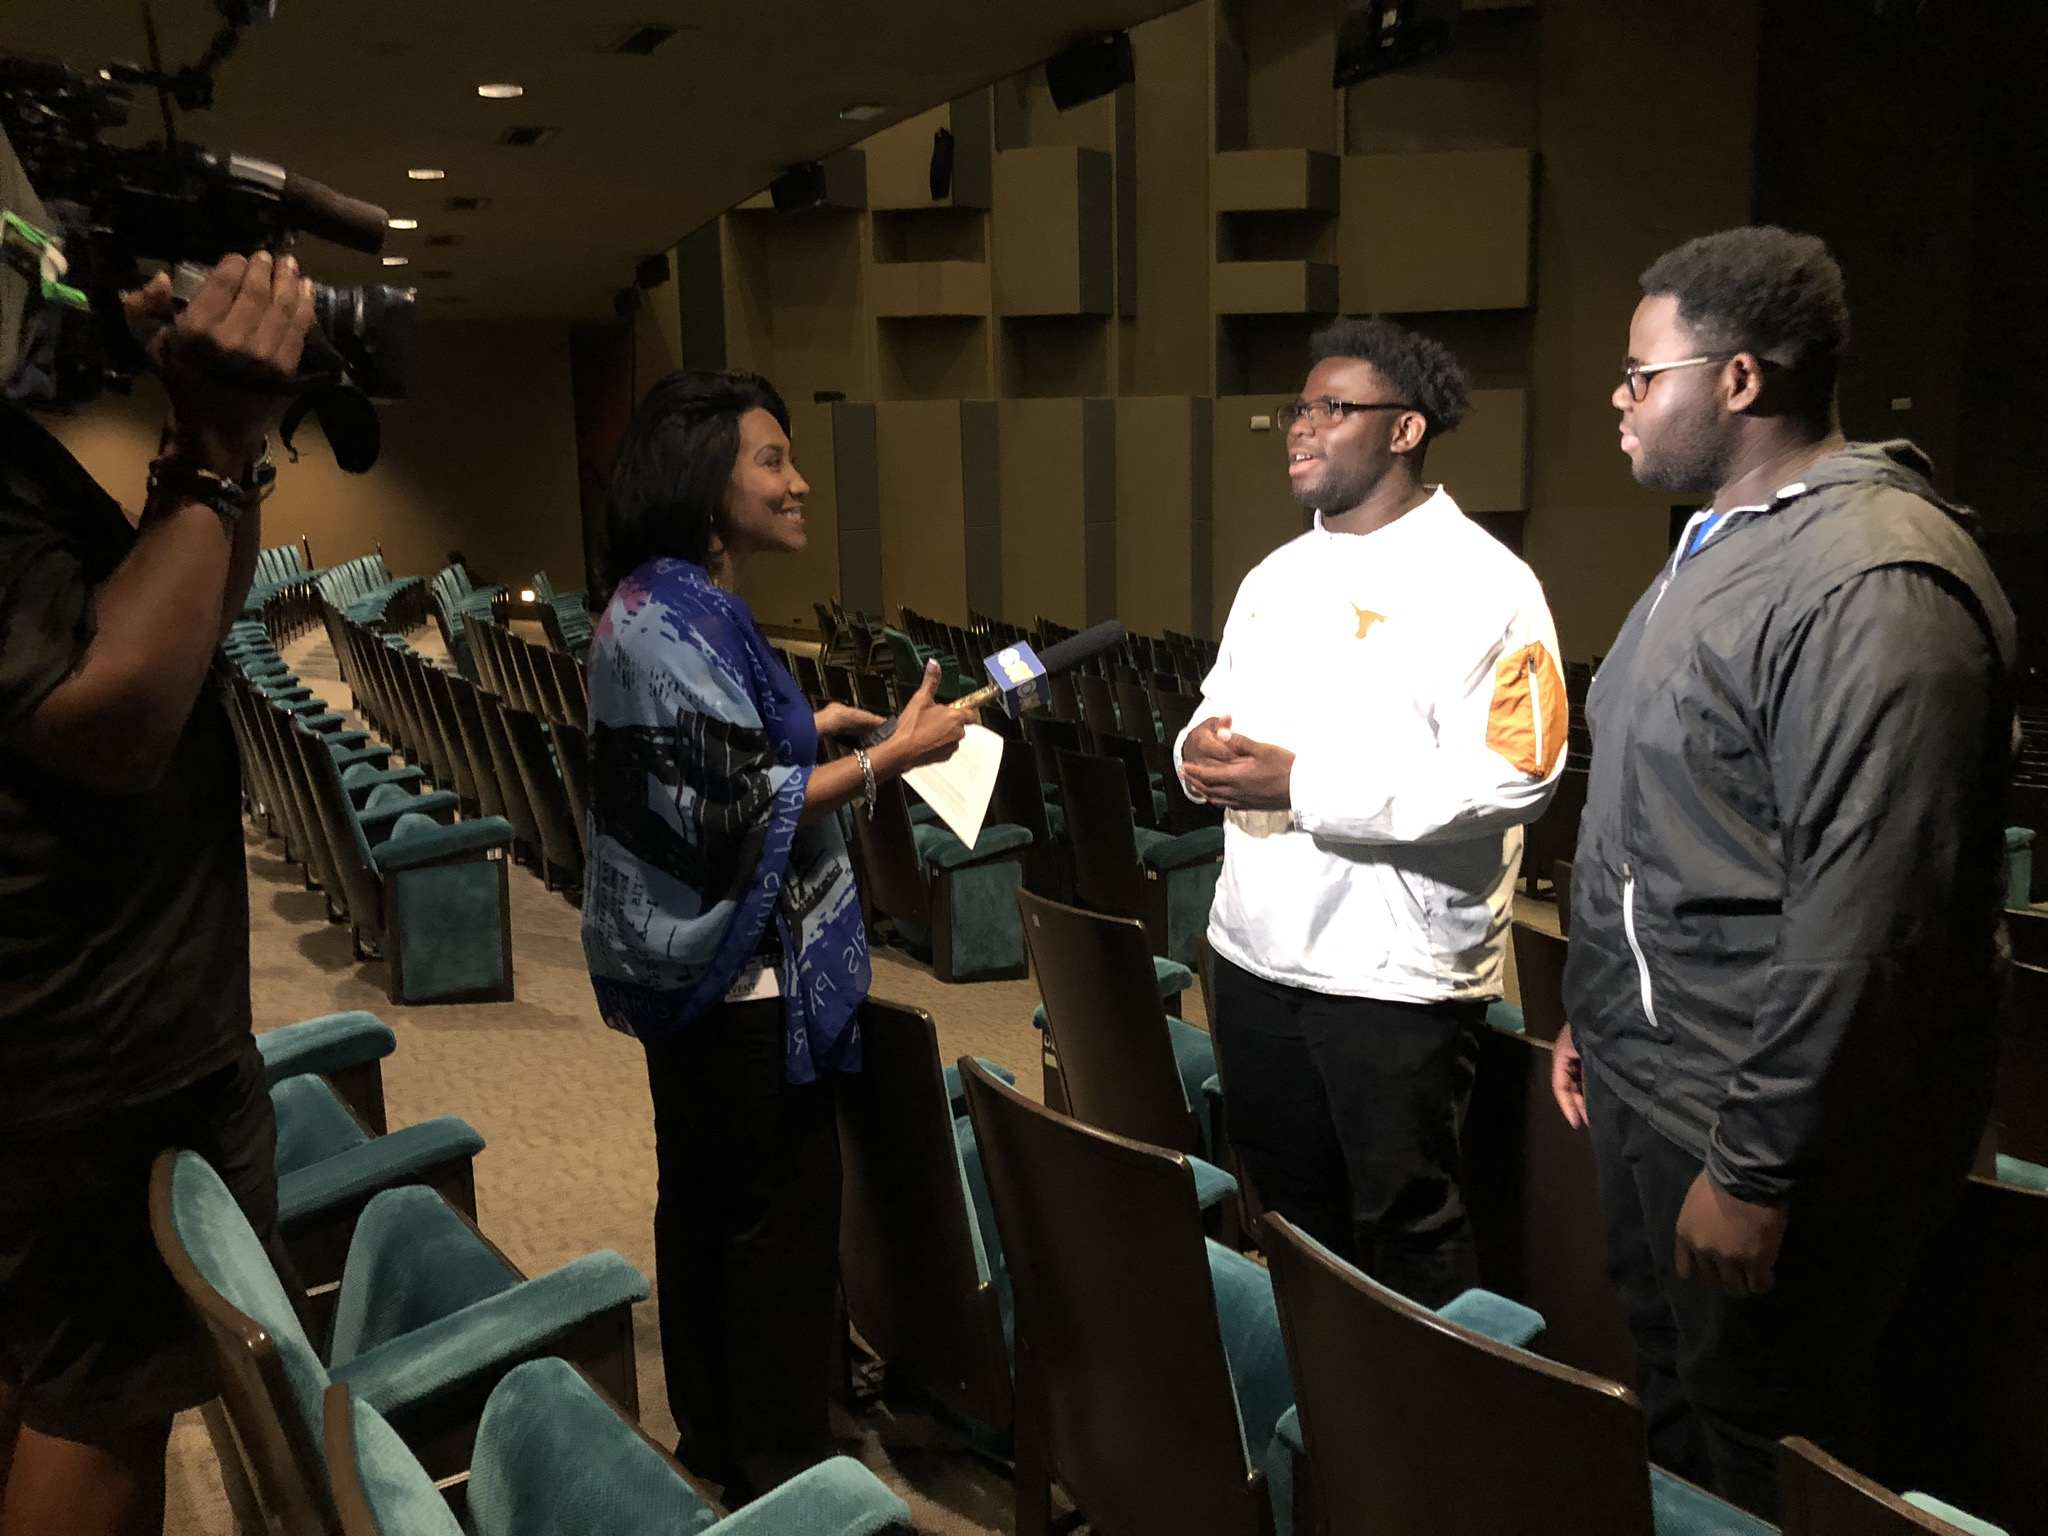 KTVT-TV interviews students during the Hamilton Education Program (EduHam).